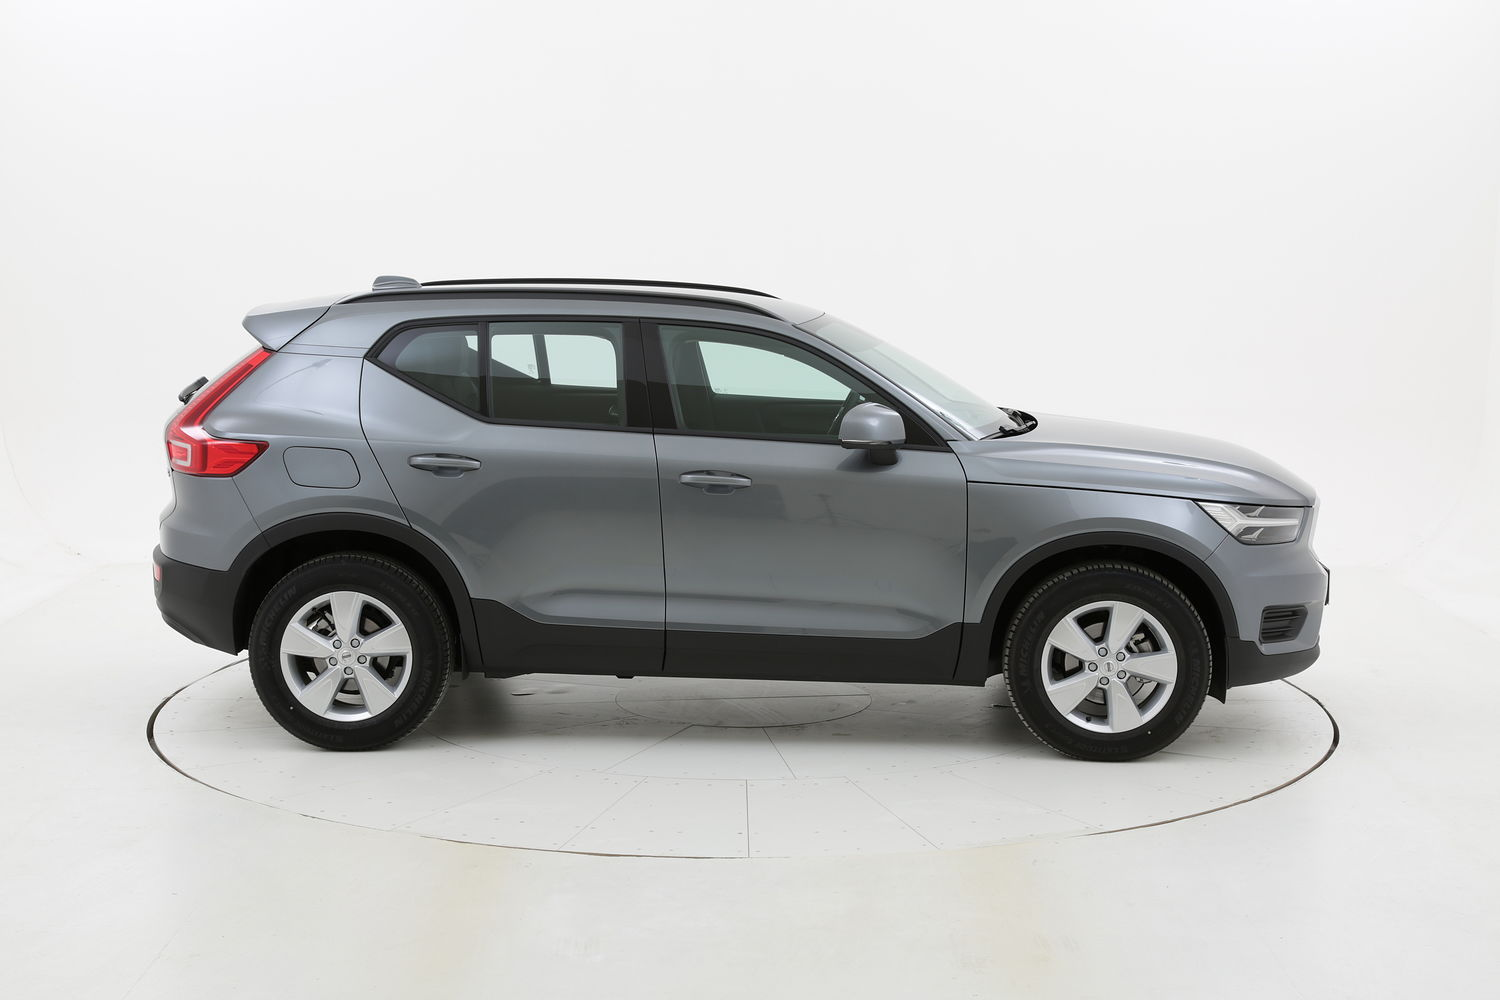 Volvo XC40 D3 Business Geartronic km 0 diesel grigia